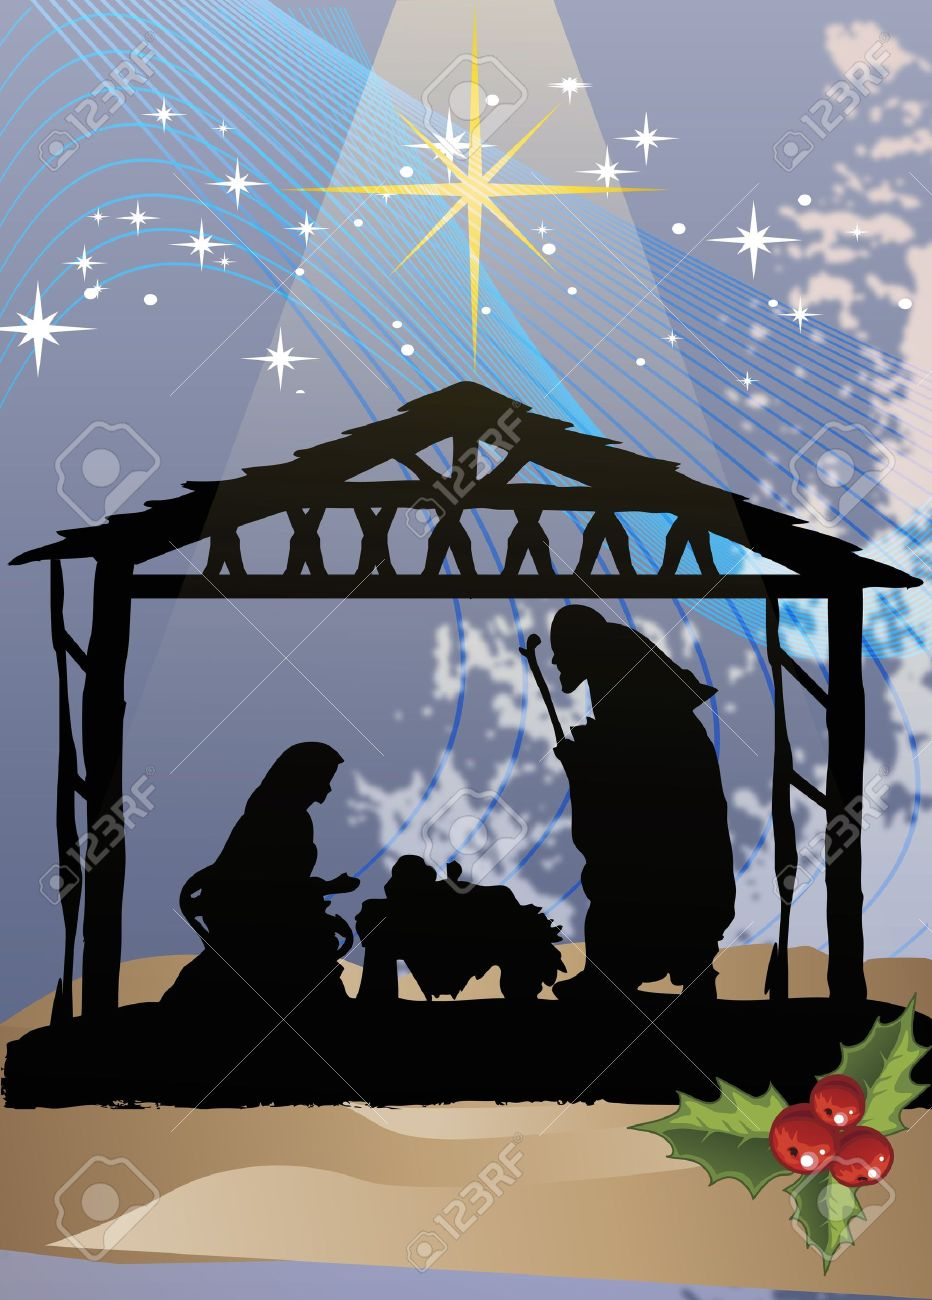 Christmas bethlehem clipart for facebook download Christmas bethlehem clipart for facebook - ClipartFox download